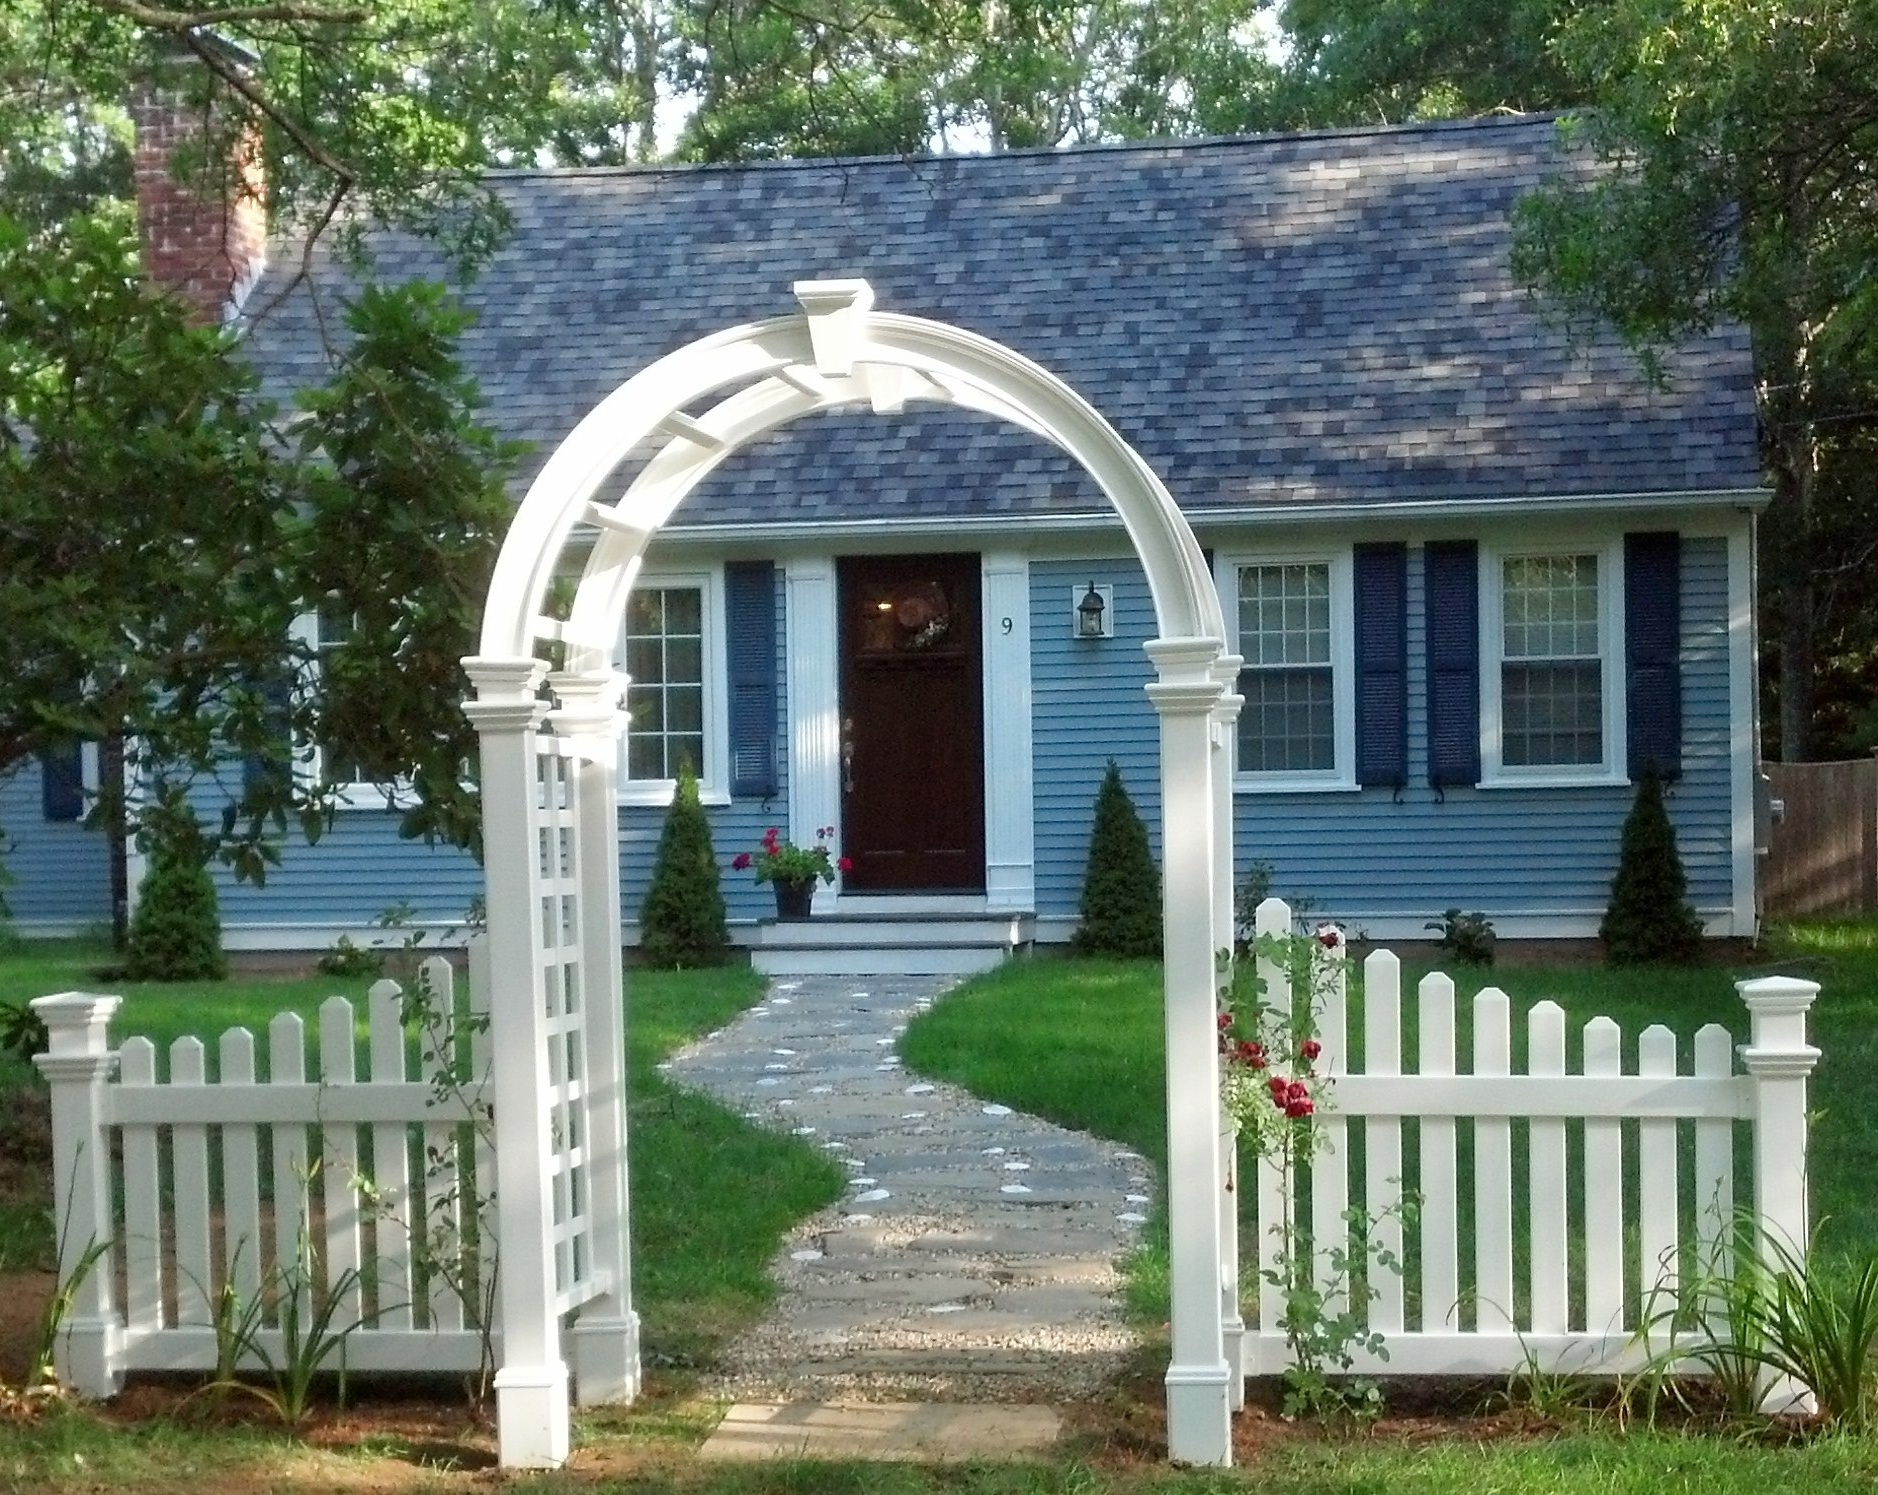 Arbor & House, 9 Turtle Cove, Sandwich, MA, Cape Cod